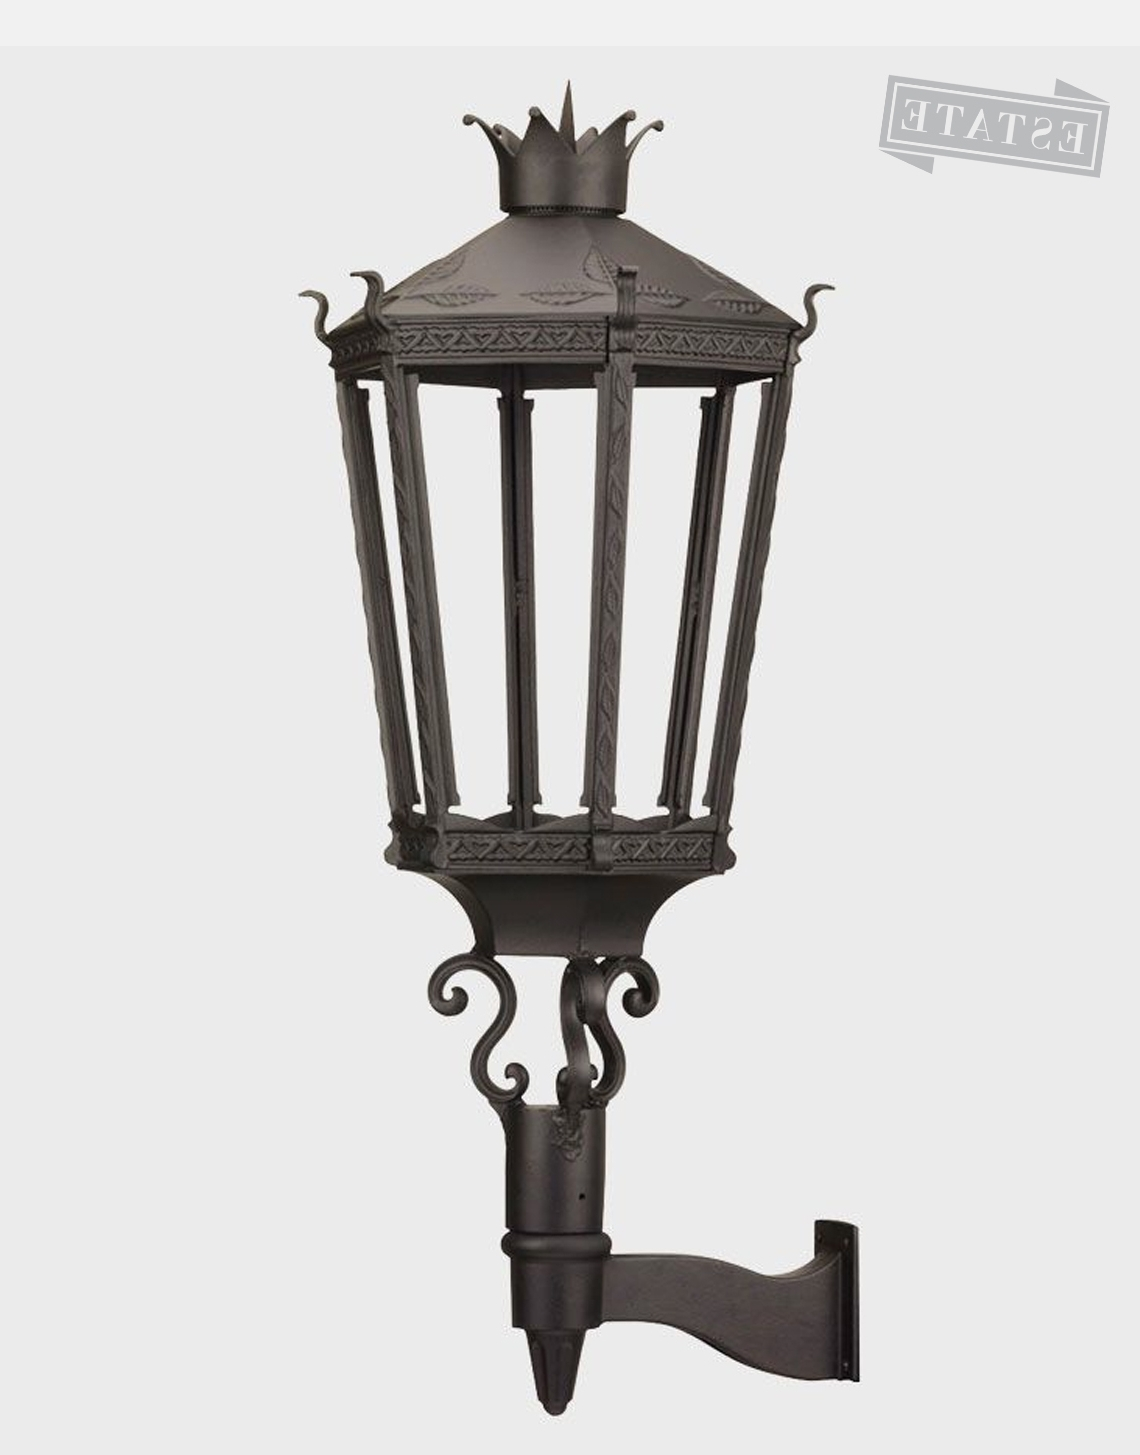 American Gas Lamp Works Regarding Outdoor Wall Mount Lights Gallery 11 Of 20